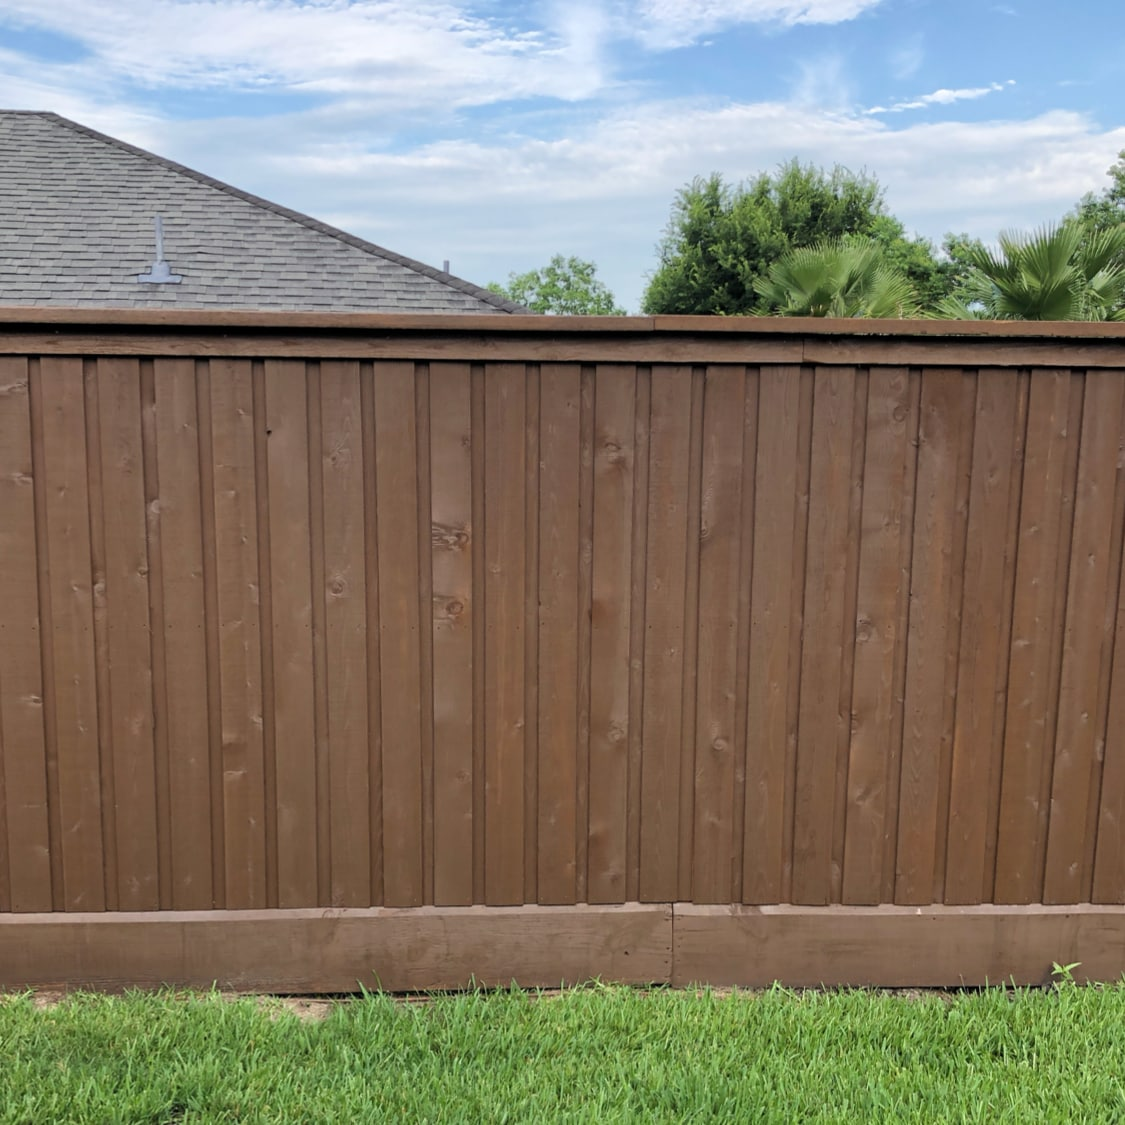 Texan Fence and Construction